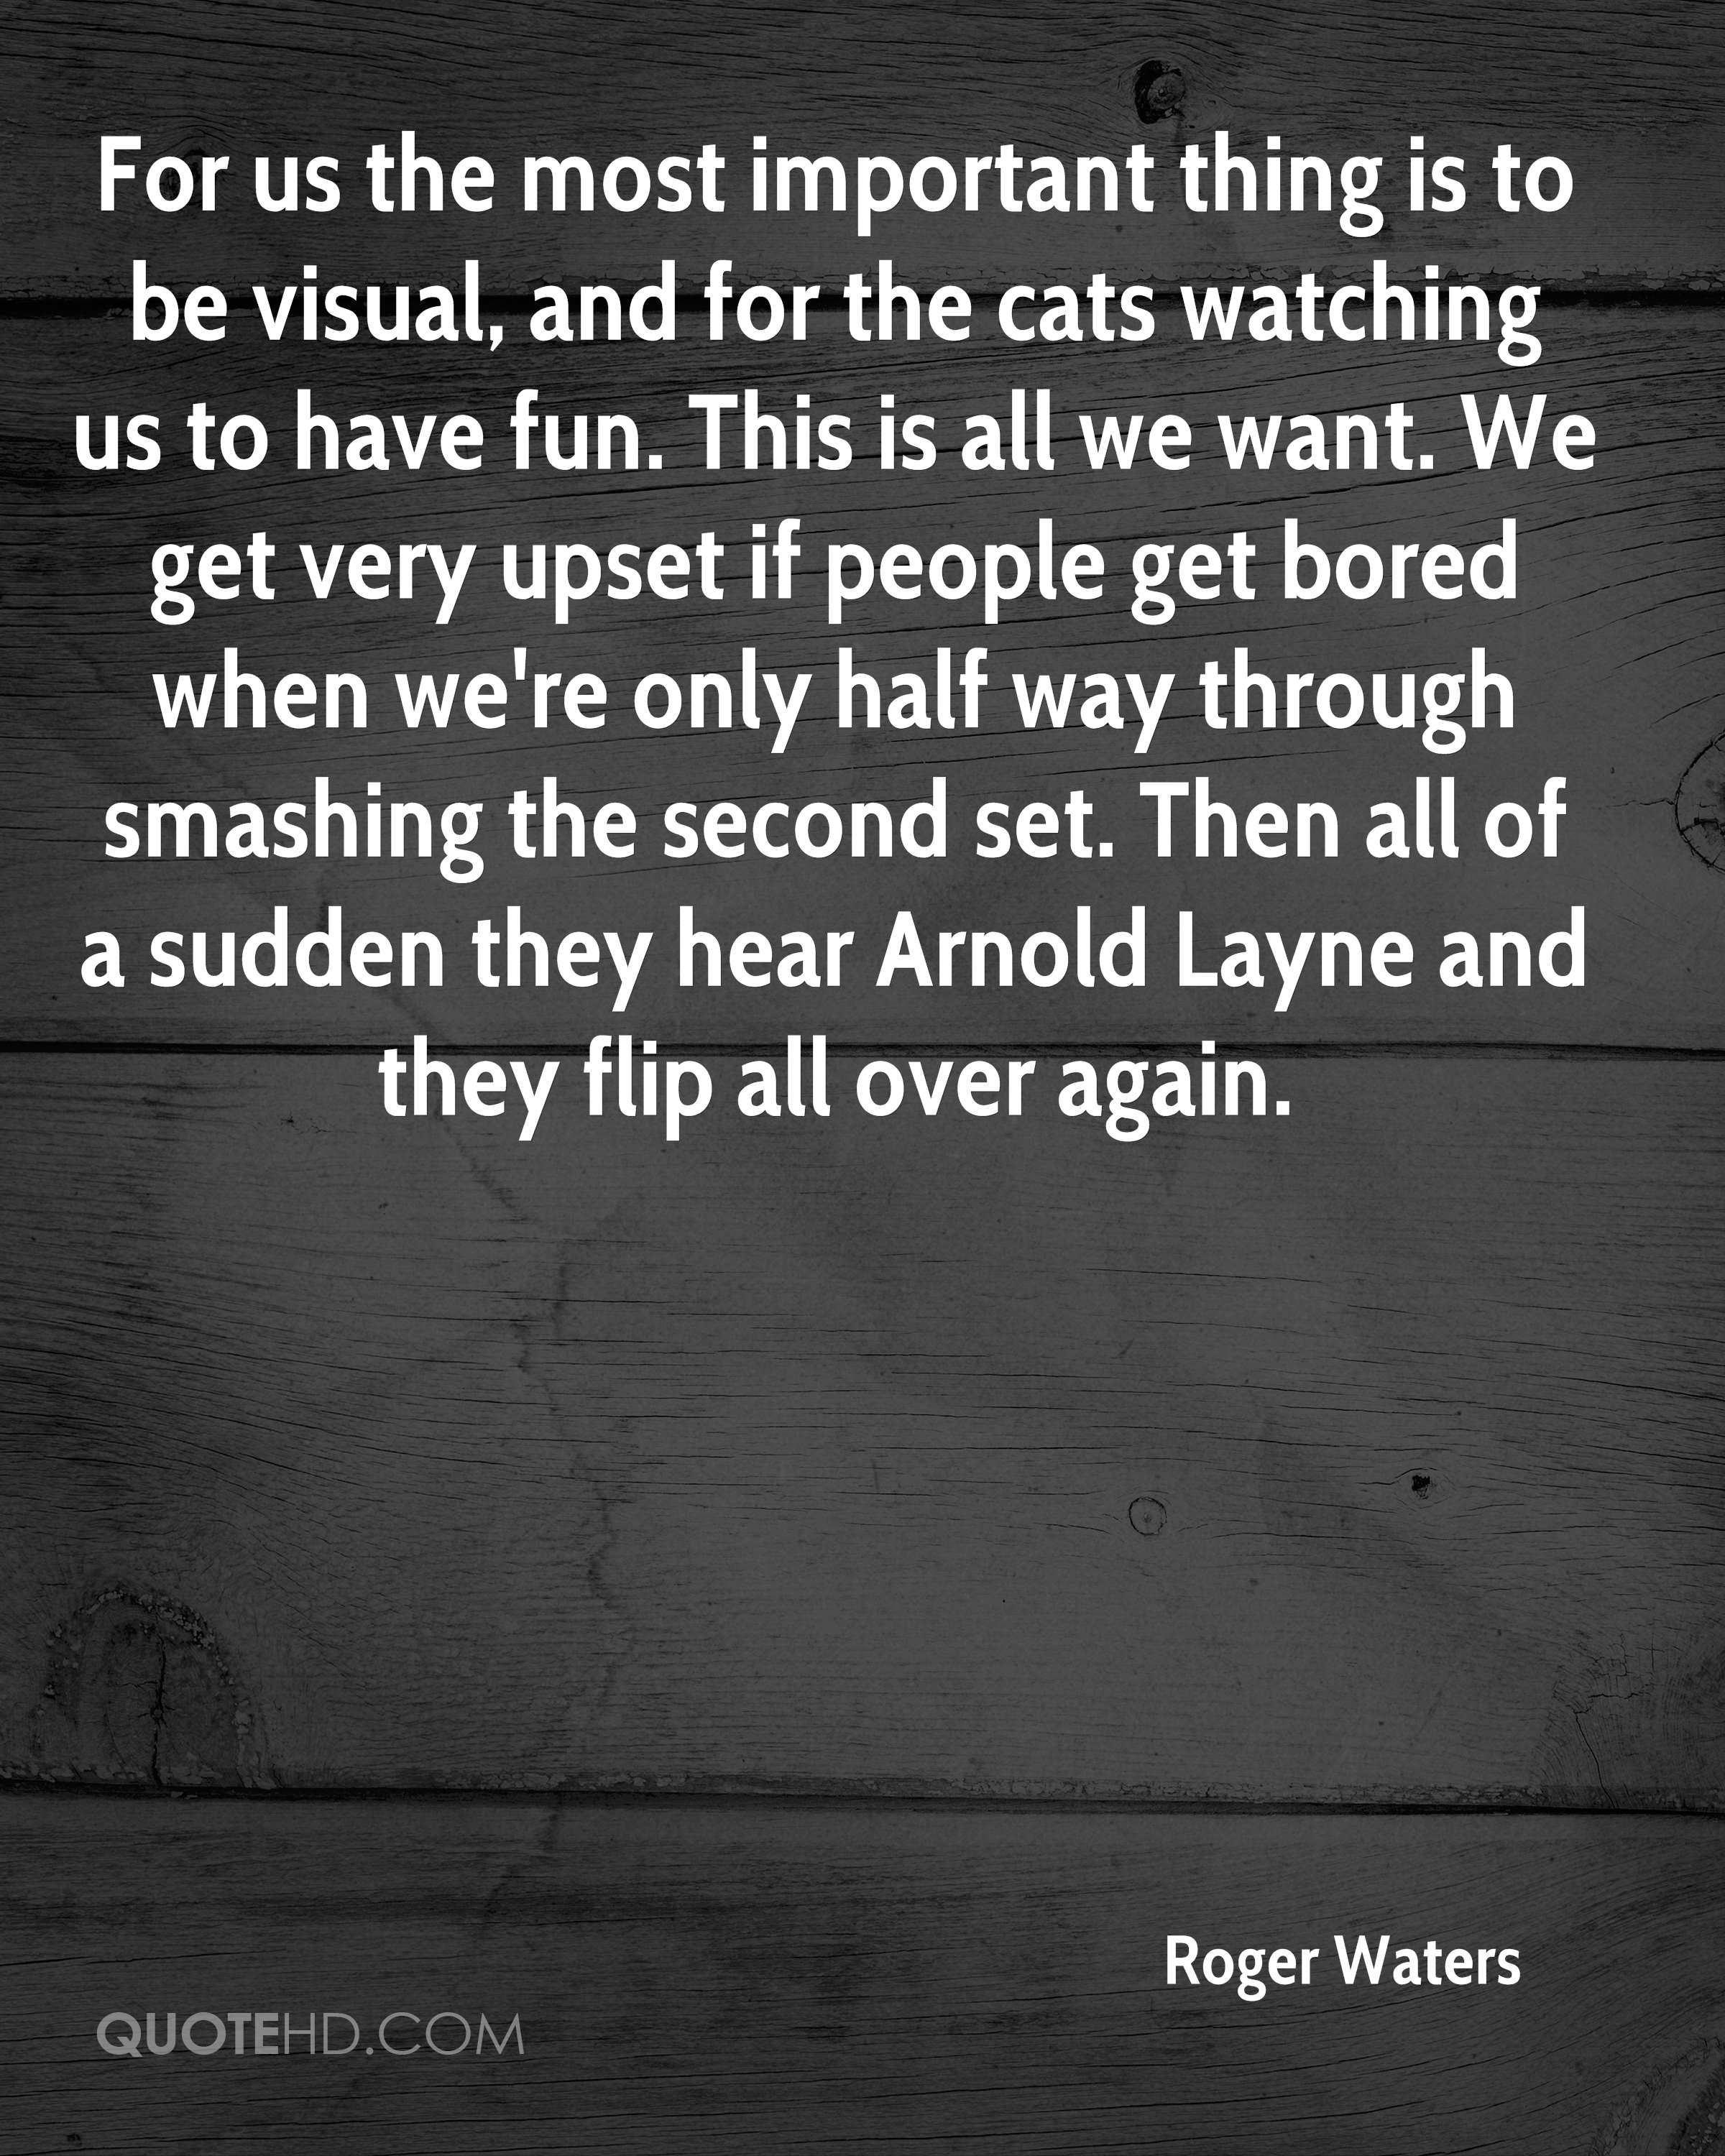 For us the most important thing is to be visual, and for the cats watching us to have fun. This is all we want. We get very upset if people get bored when we're only half way through smashing the second set. Then all of a sudden they hear Arnold Layne and they flip all over again.